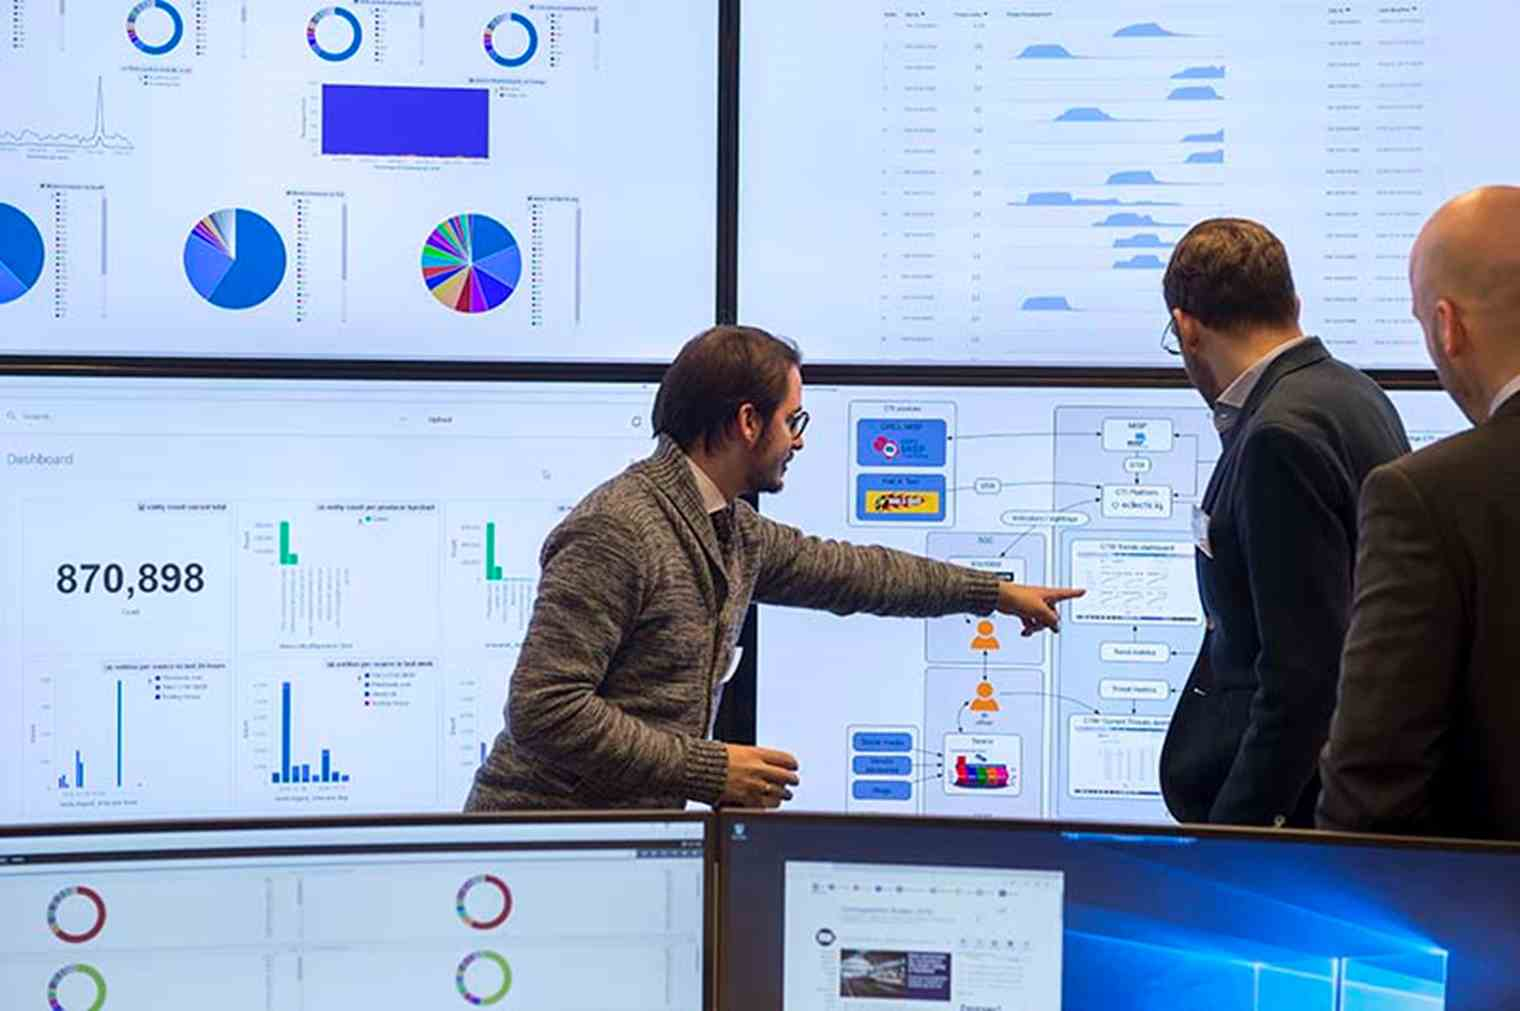 Using Cyber Threat Intelligence to defend against advanced